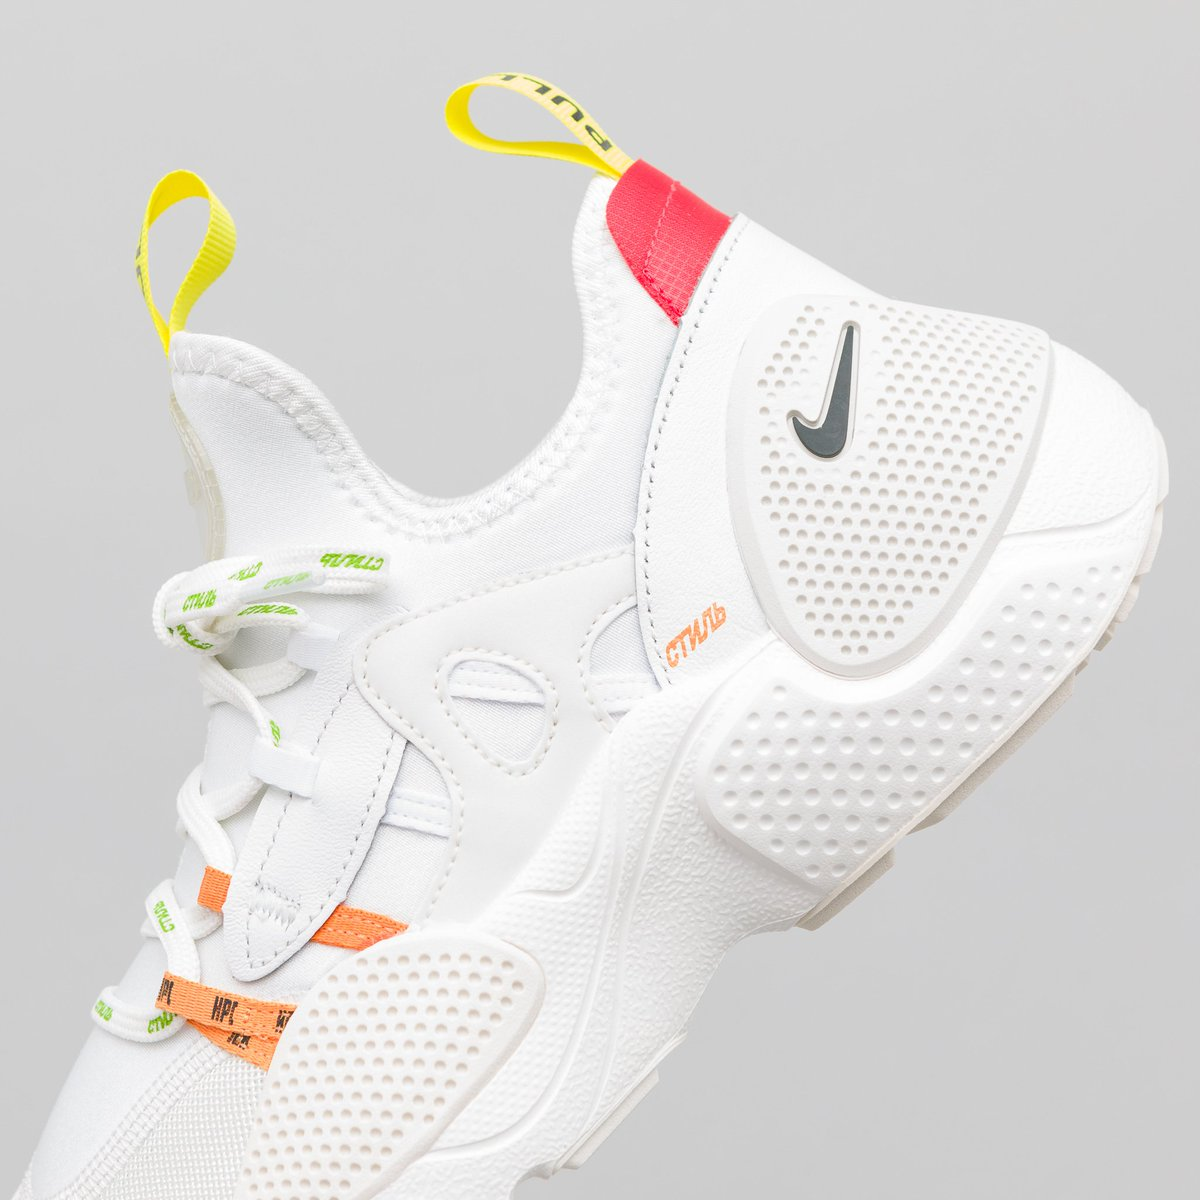 a19651e2159a ... mostly white colourway of the Heron Preston x Nike Huarache EDGE on Nike  CA for  170 + free shipping! https   bit.ly 2PeJaNg  pic.twitter.com UFmFTYfRHZ